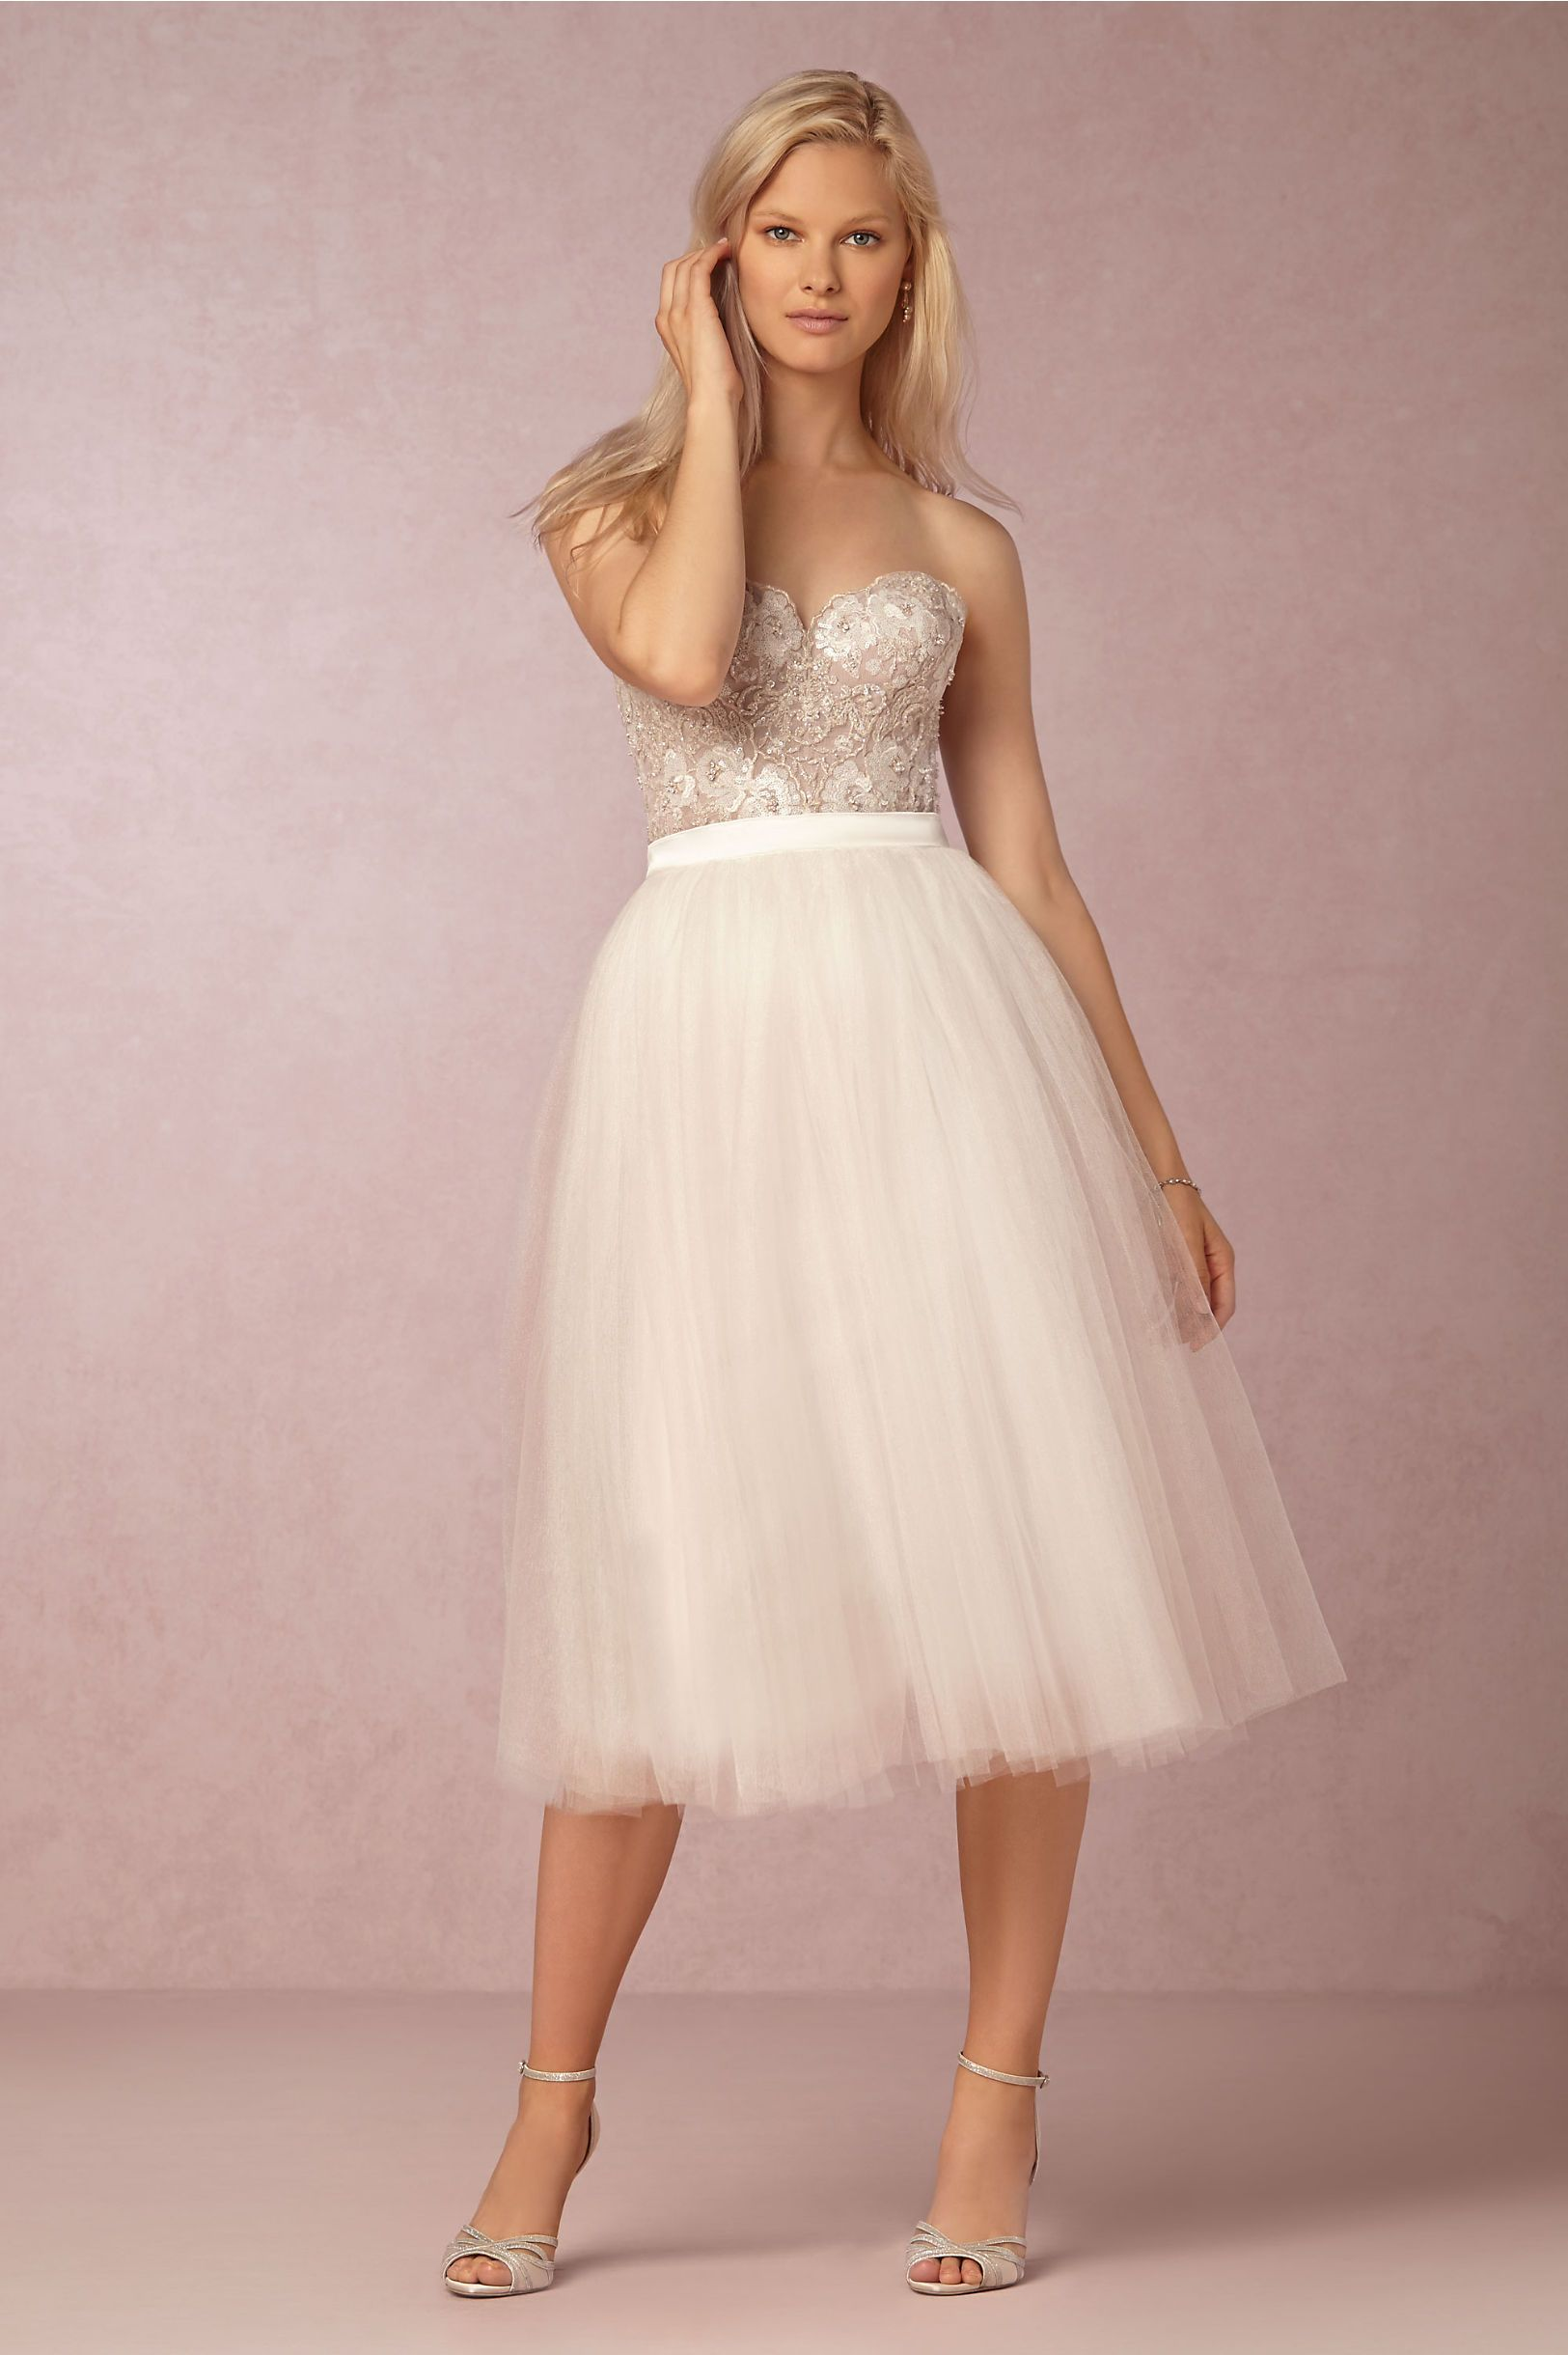 Wynne Skirt From BHLDN BHLDN Stylist Picks Pinterest Receptions Skirts